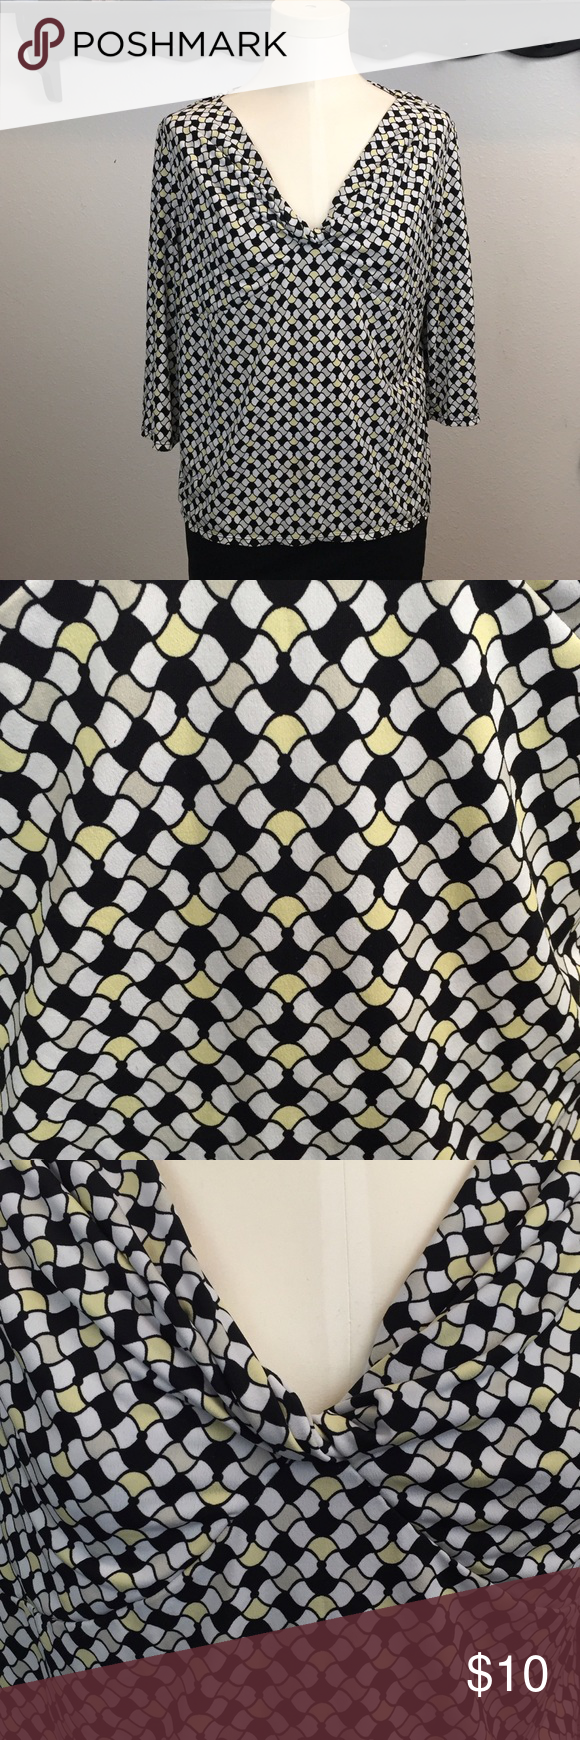 ❤️Geometric Print Work Blouse ~Get this classic work week top! ~Pair this with a pair of black slacks or skirt and you are ready for the office! ~This features a knotted detail at the v-neck collar. ~This has been worn a few times.  This is in good condition! ~There may be some signs of wash wear. ~Get this now! ~NO TRADES Tops Blouses